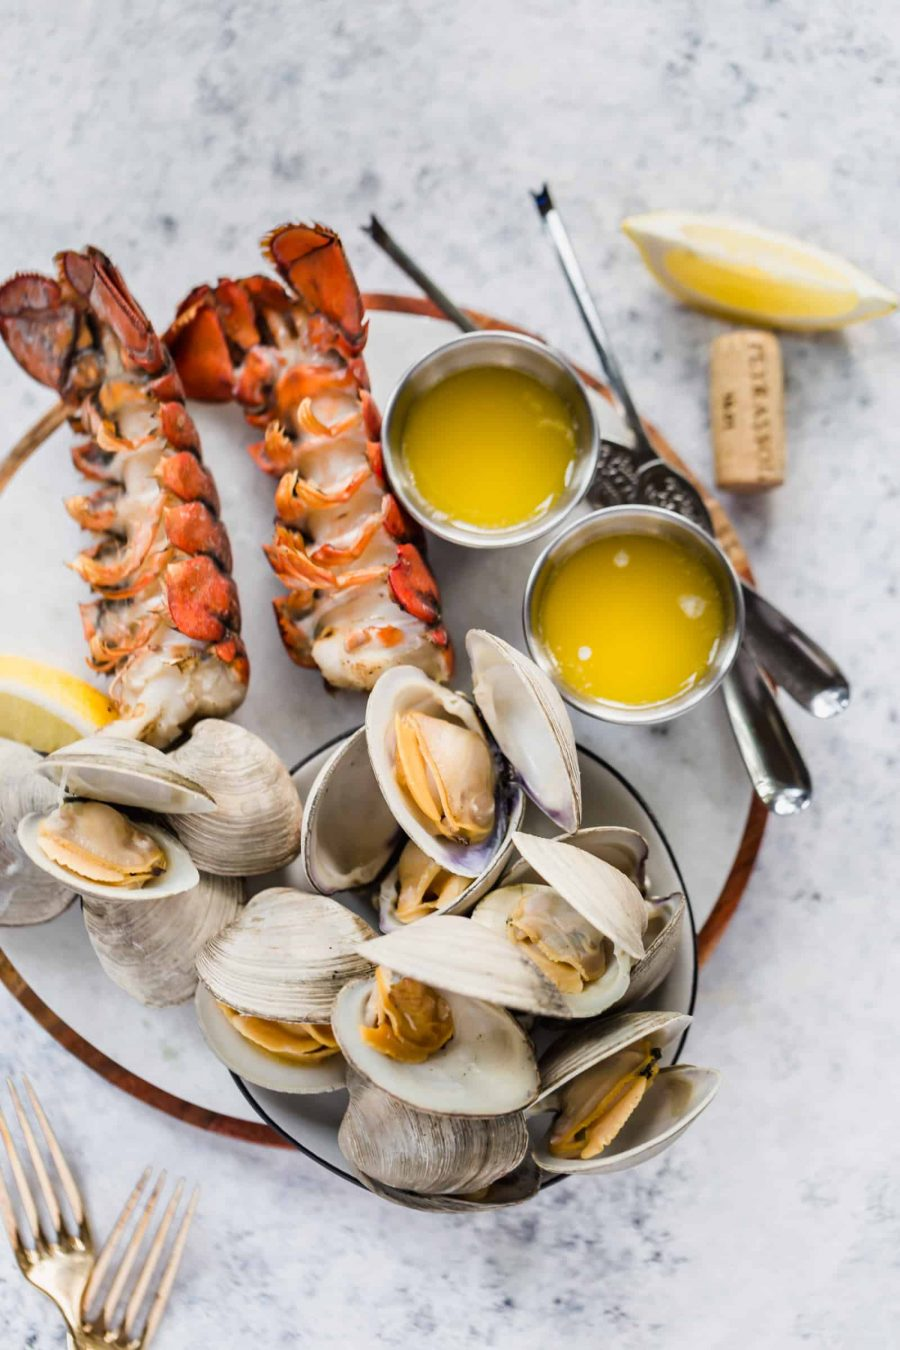 Grilled Lobster Tails and Clams